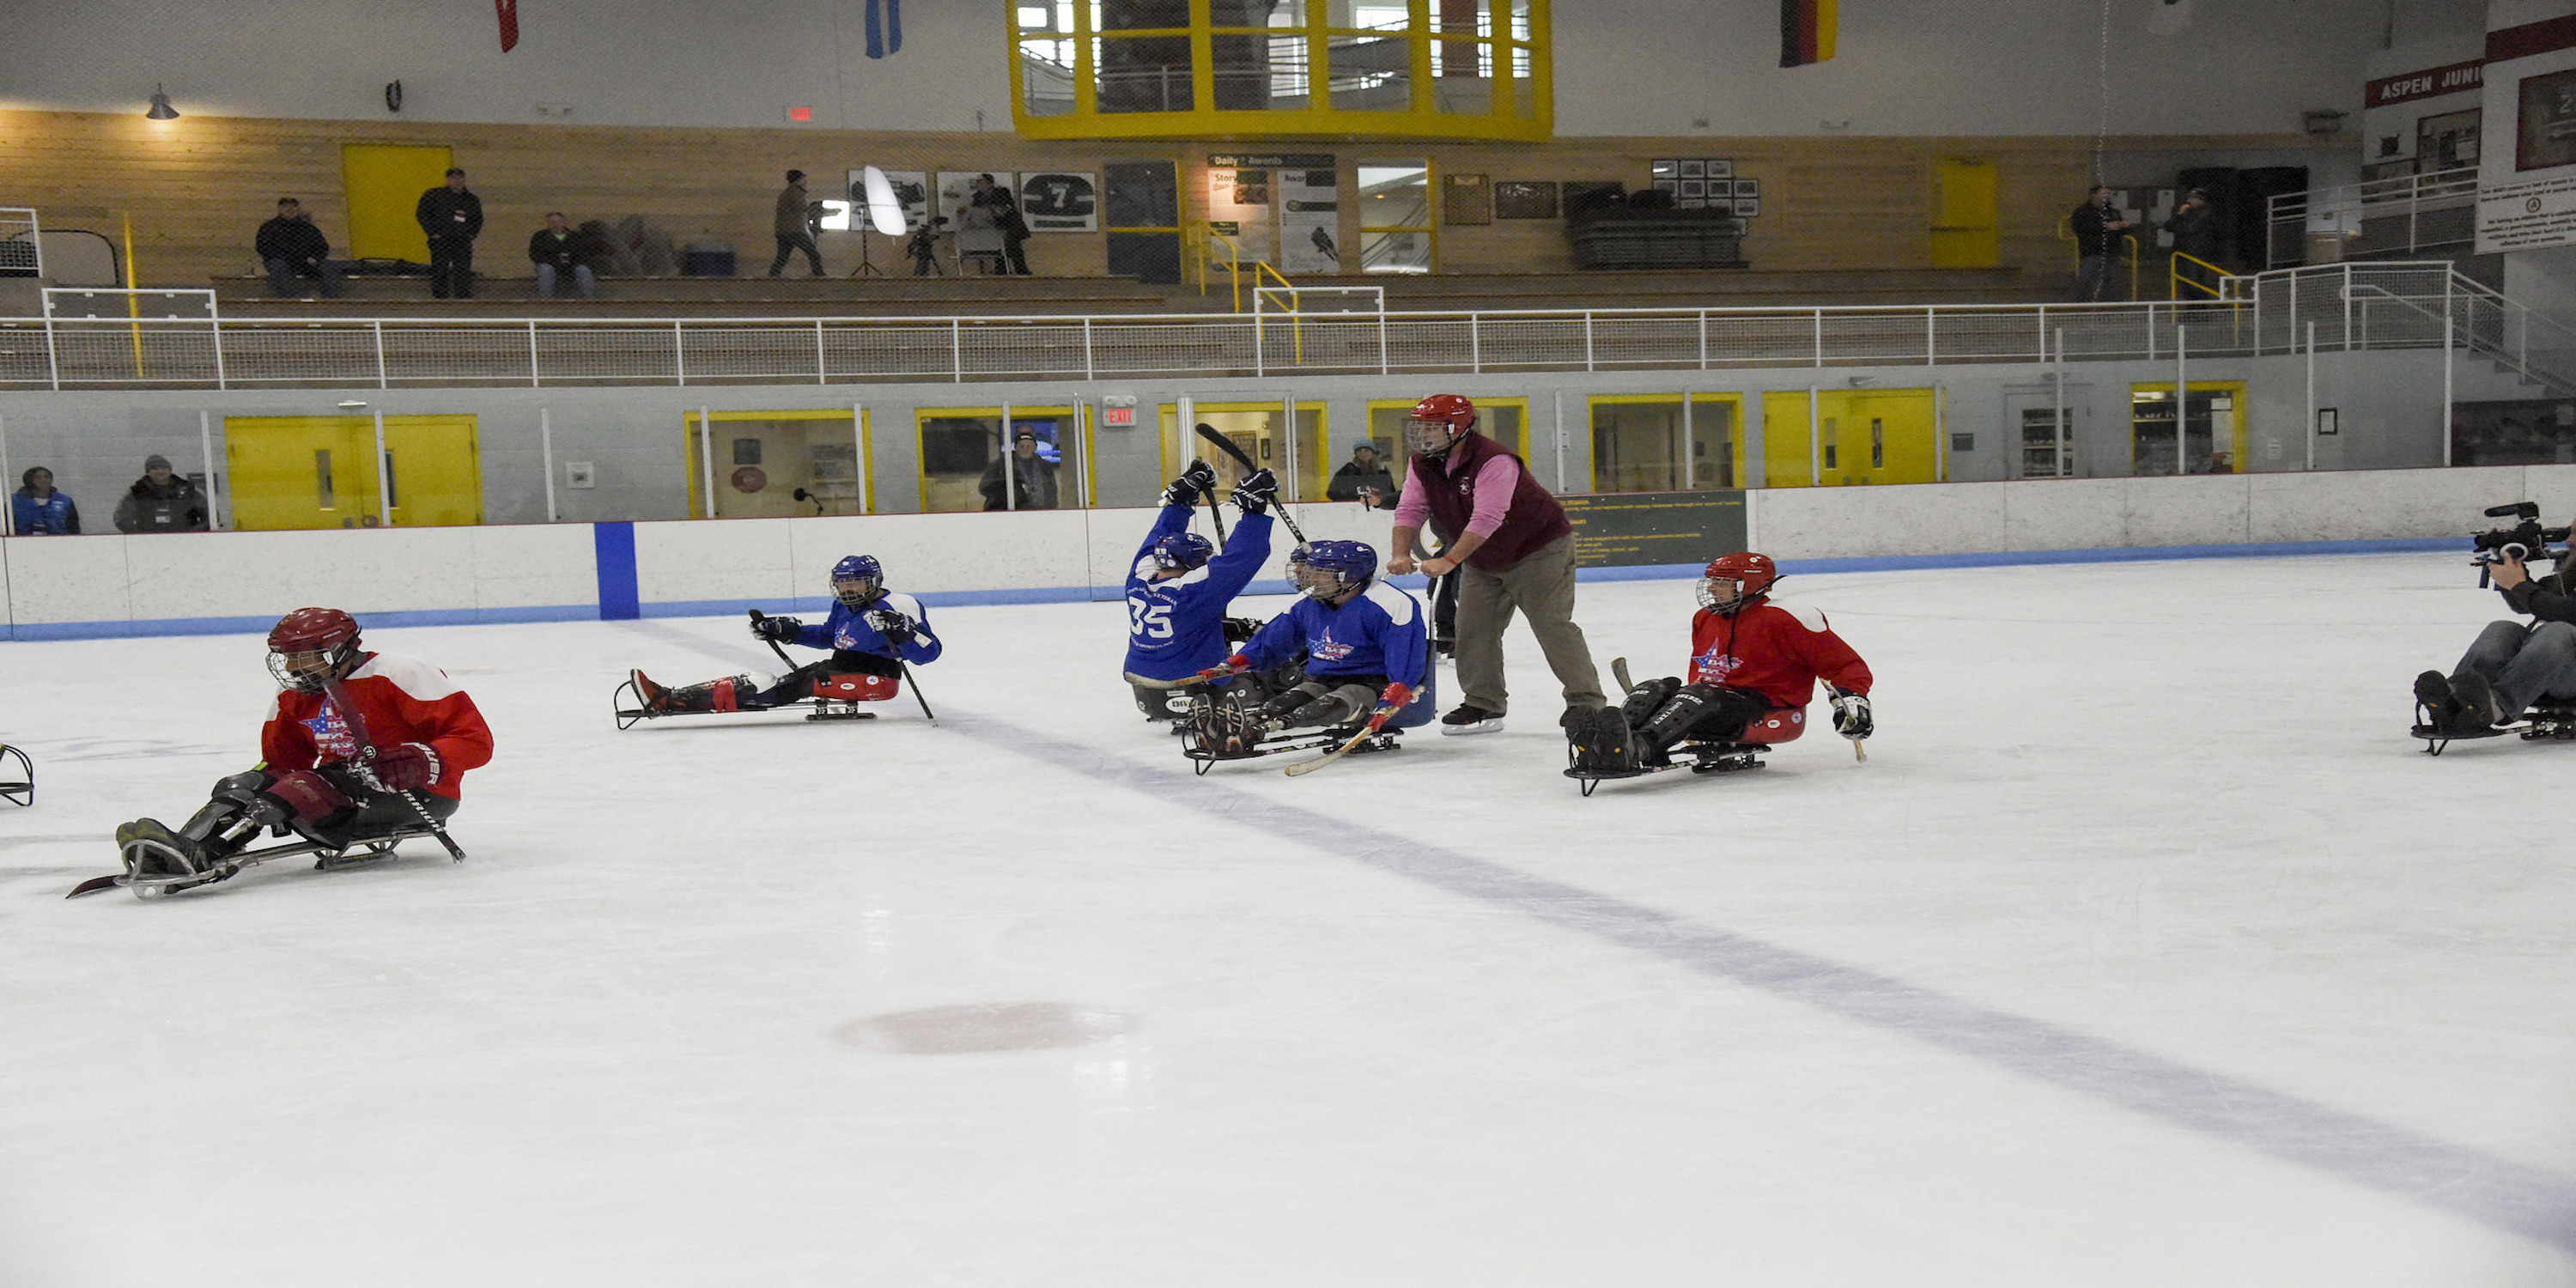 winter sports clinic